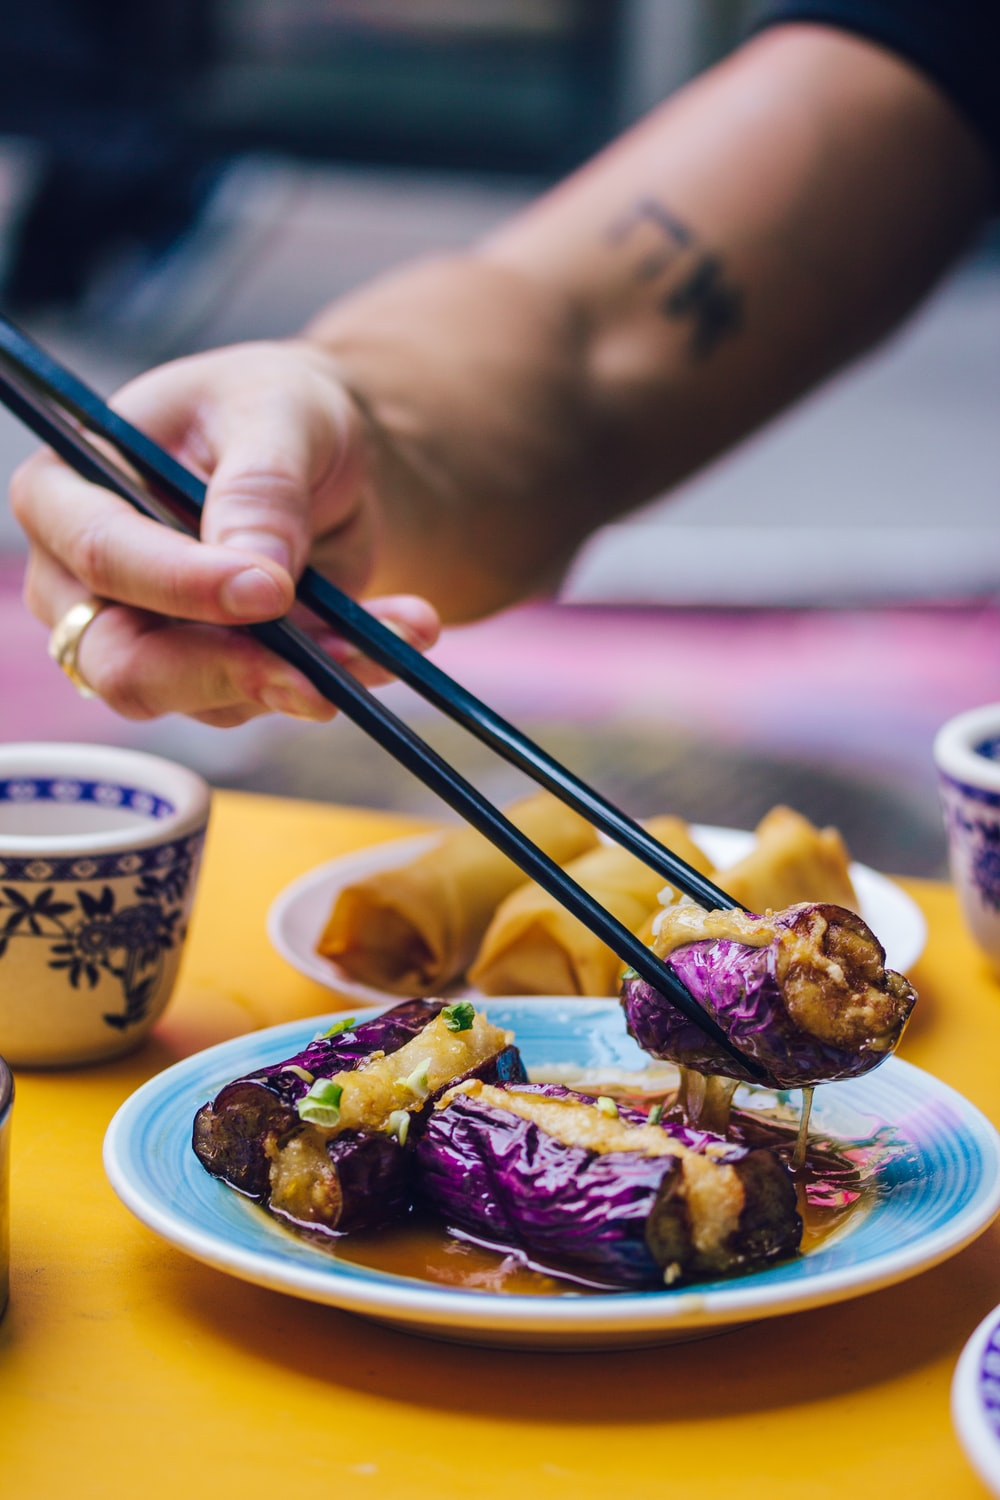 man eating food using chopsticks